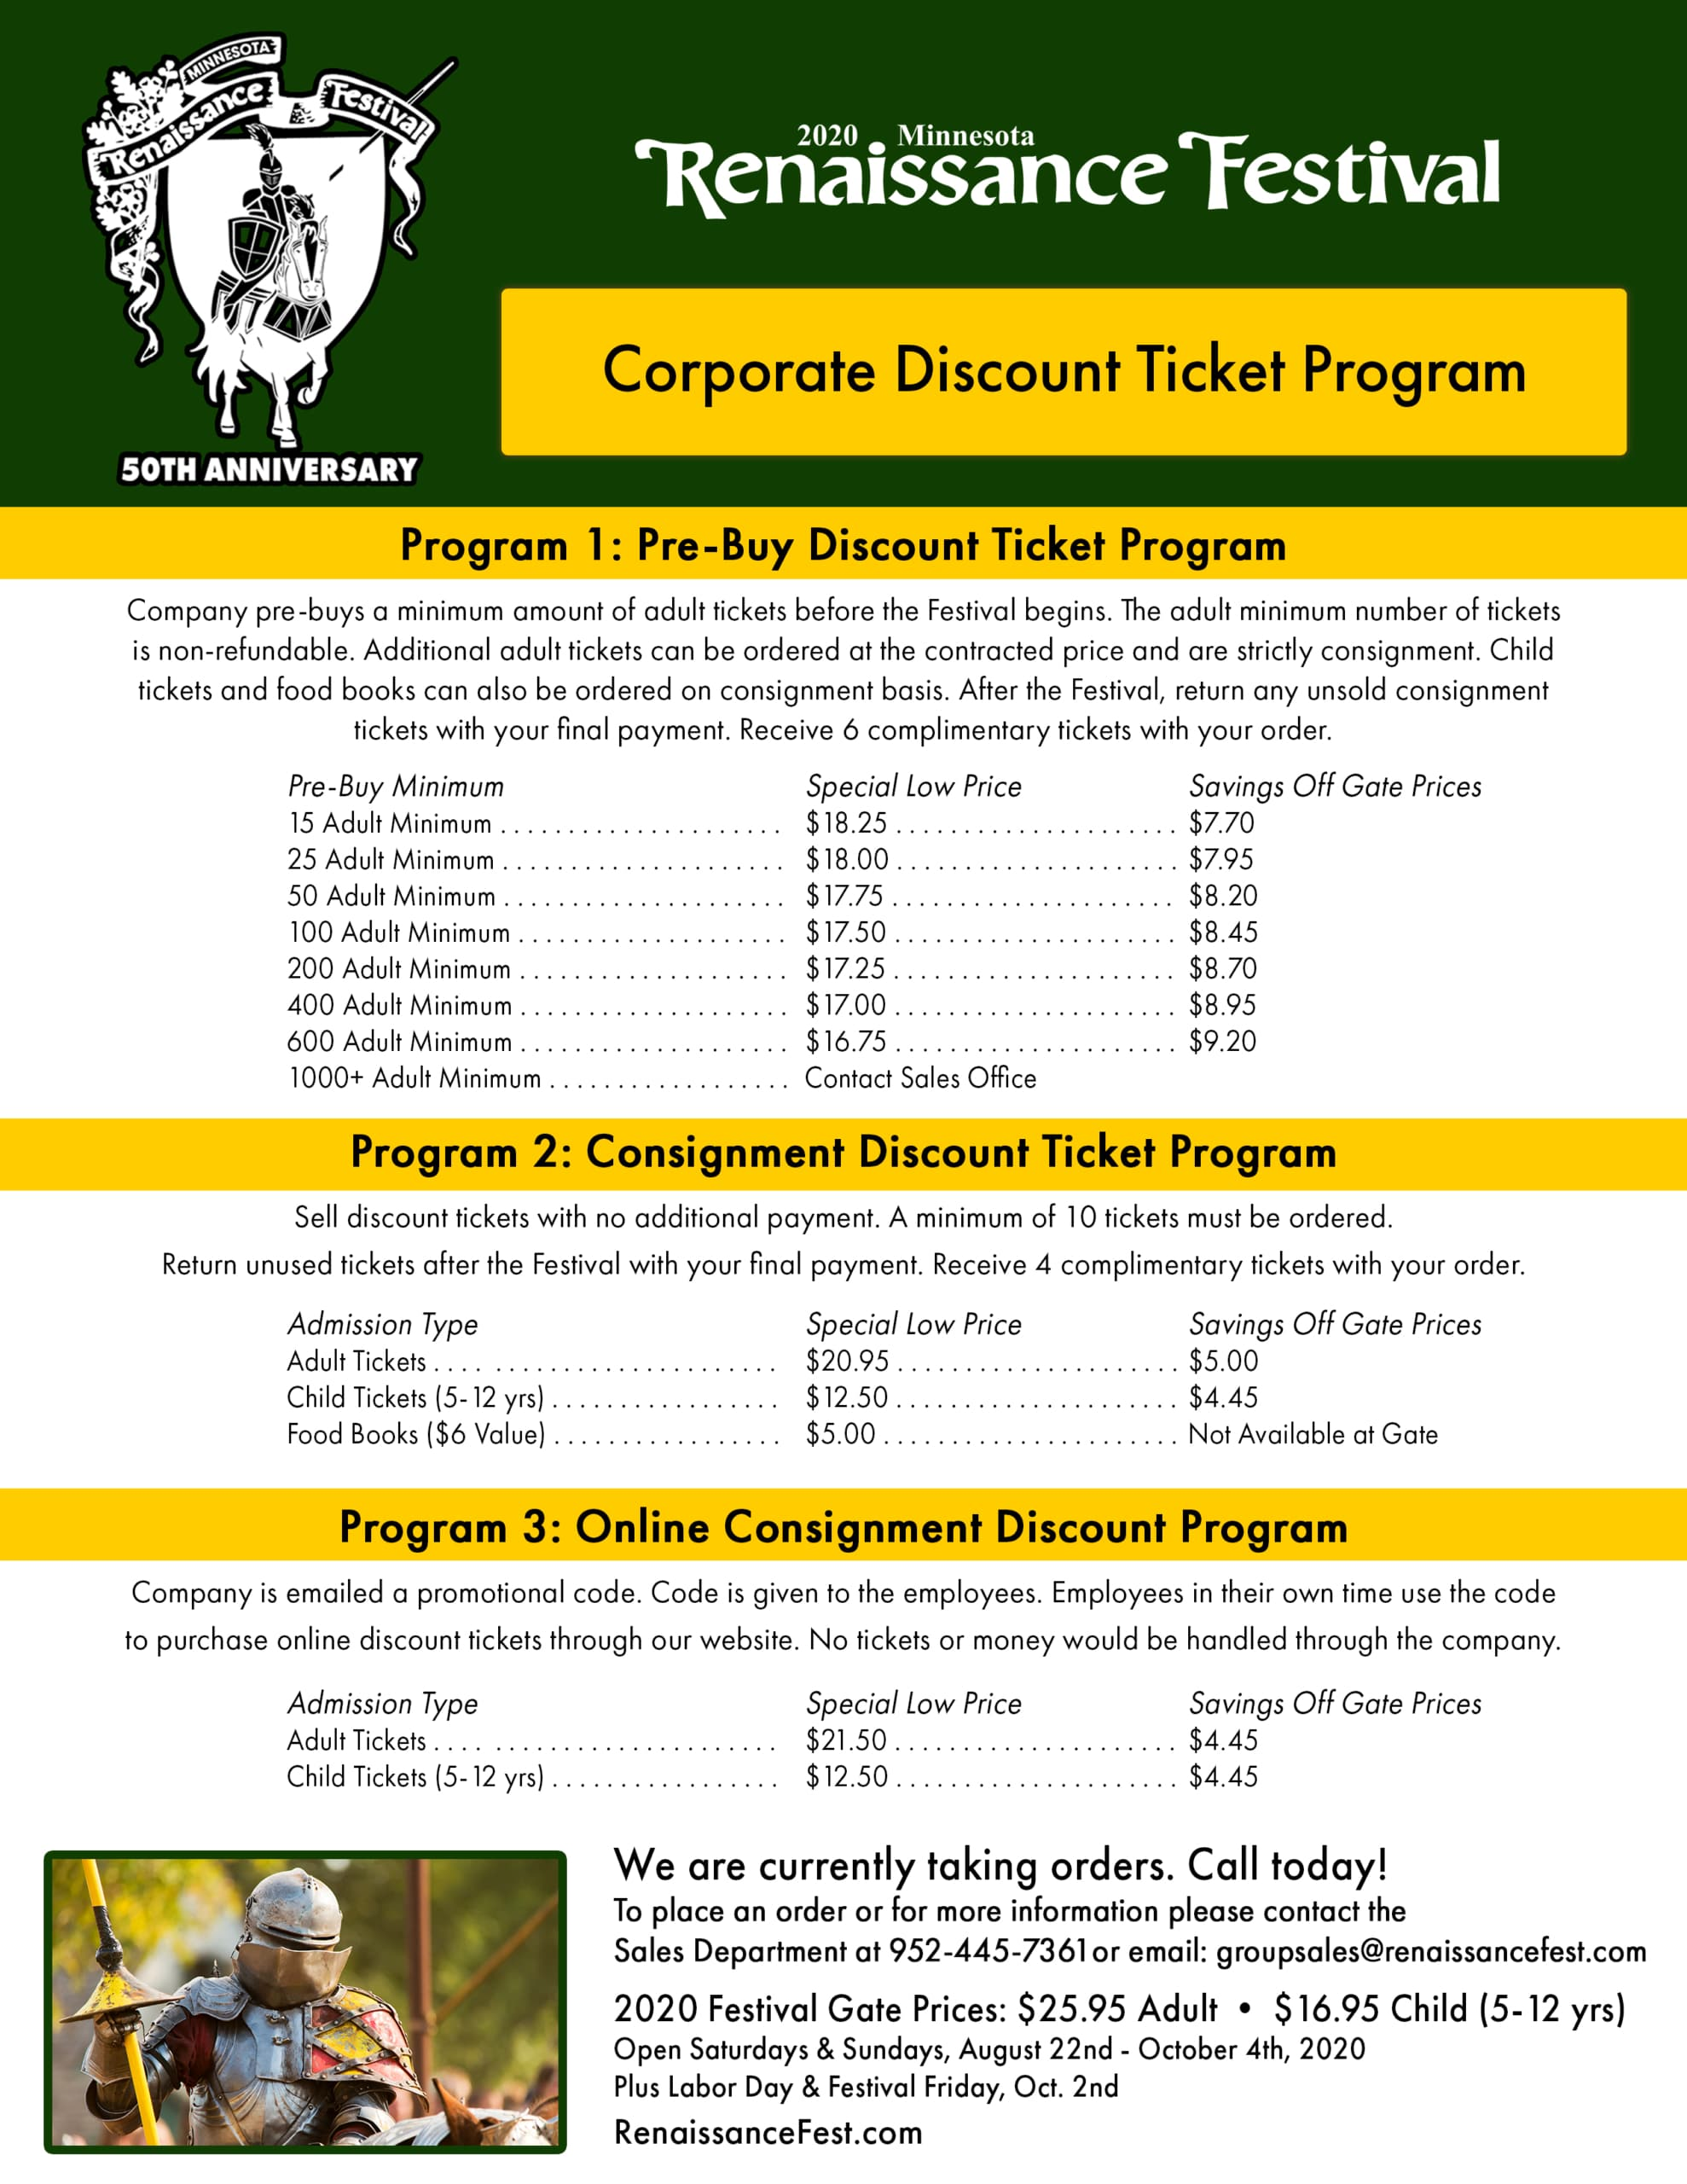 MN Renaissance Festival Corporate Discount Tickets